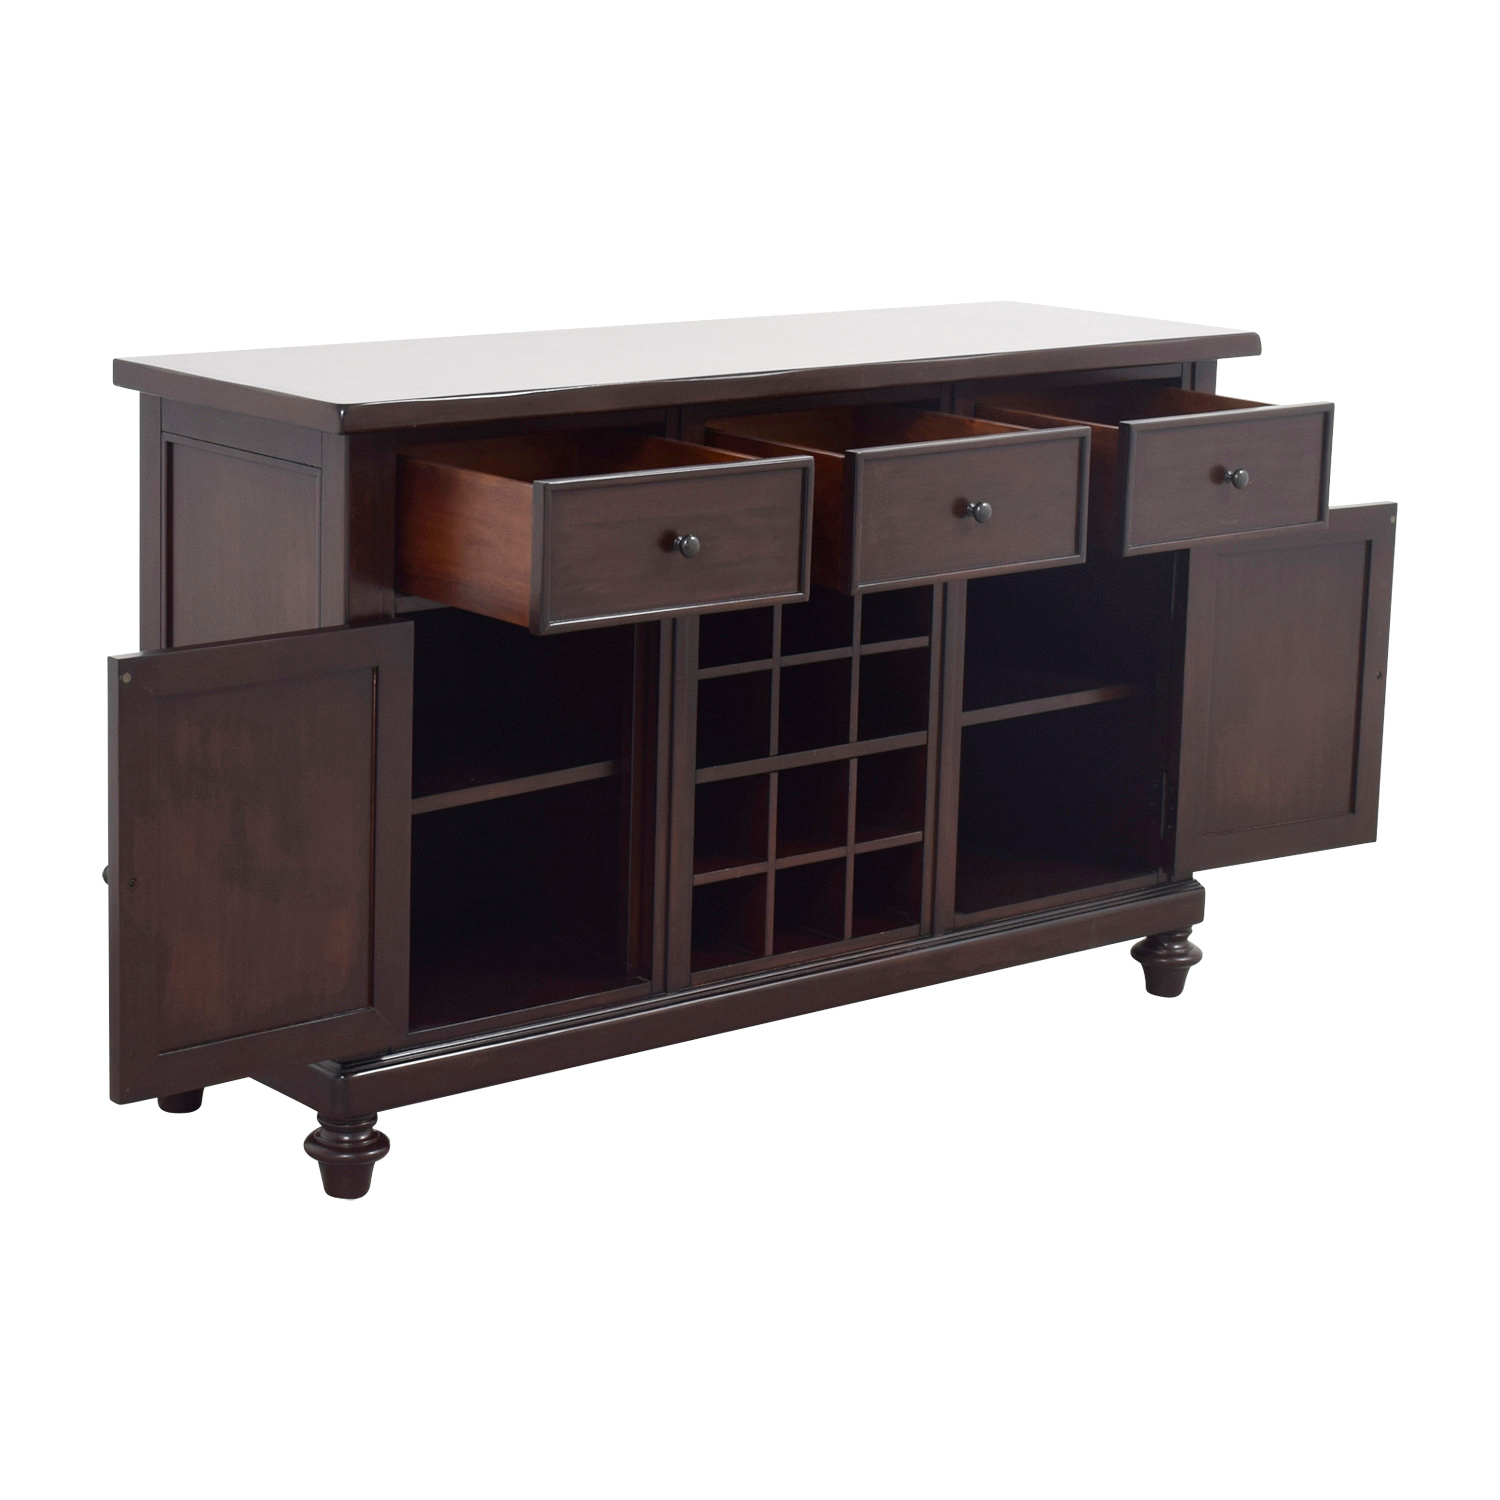 Wood Wine Storage 67 Off Pottery Barn Pottery Barn Wood Bar With Wine